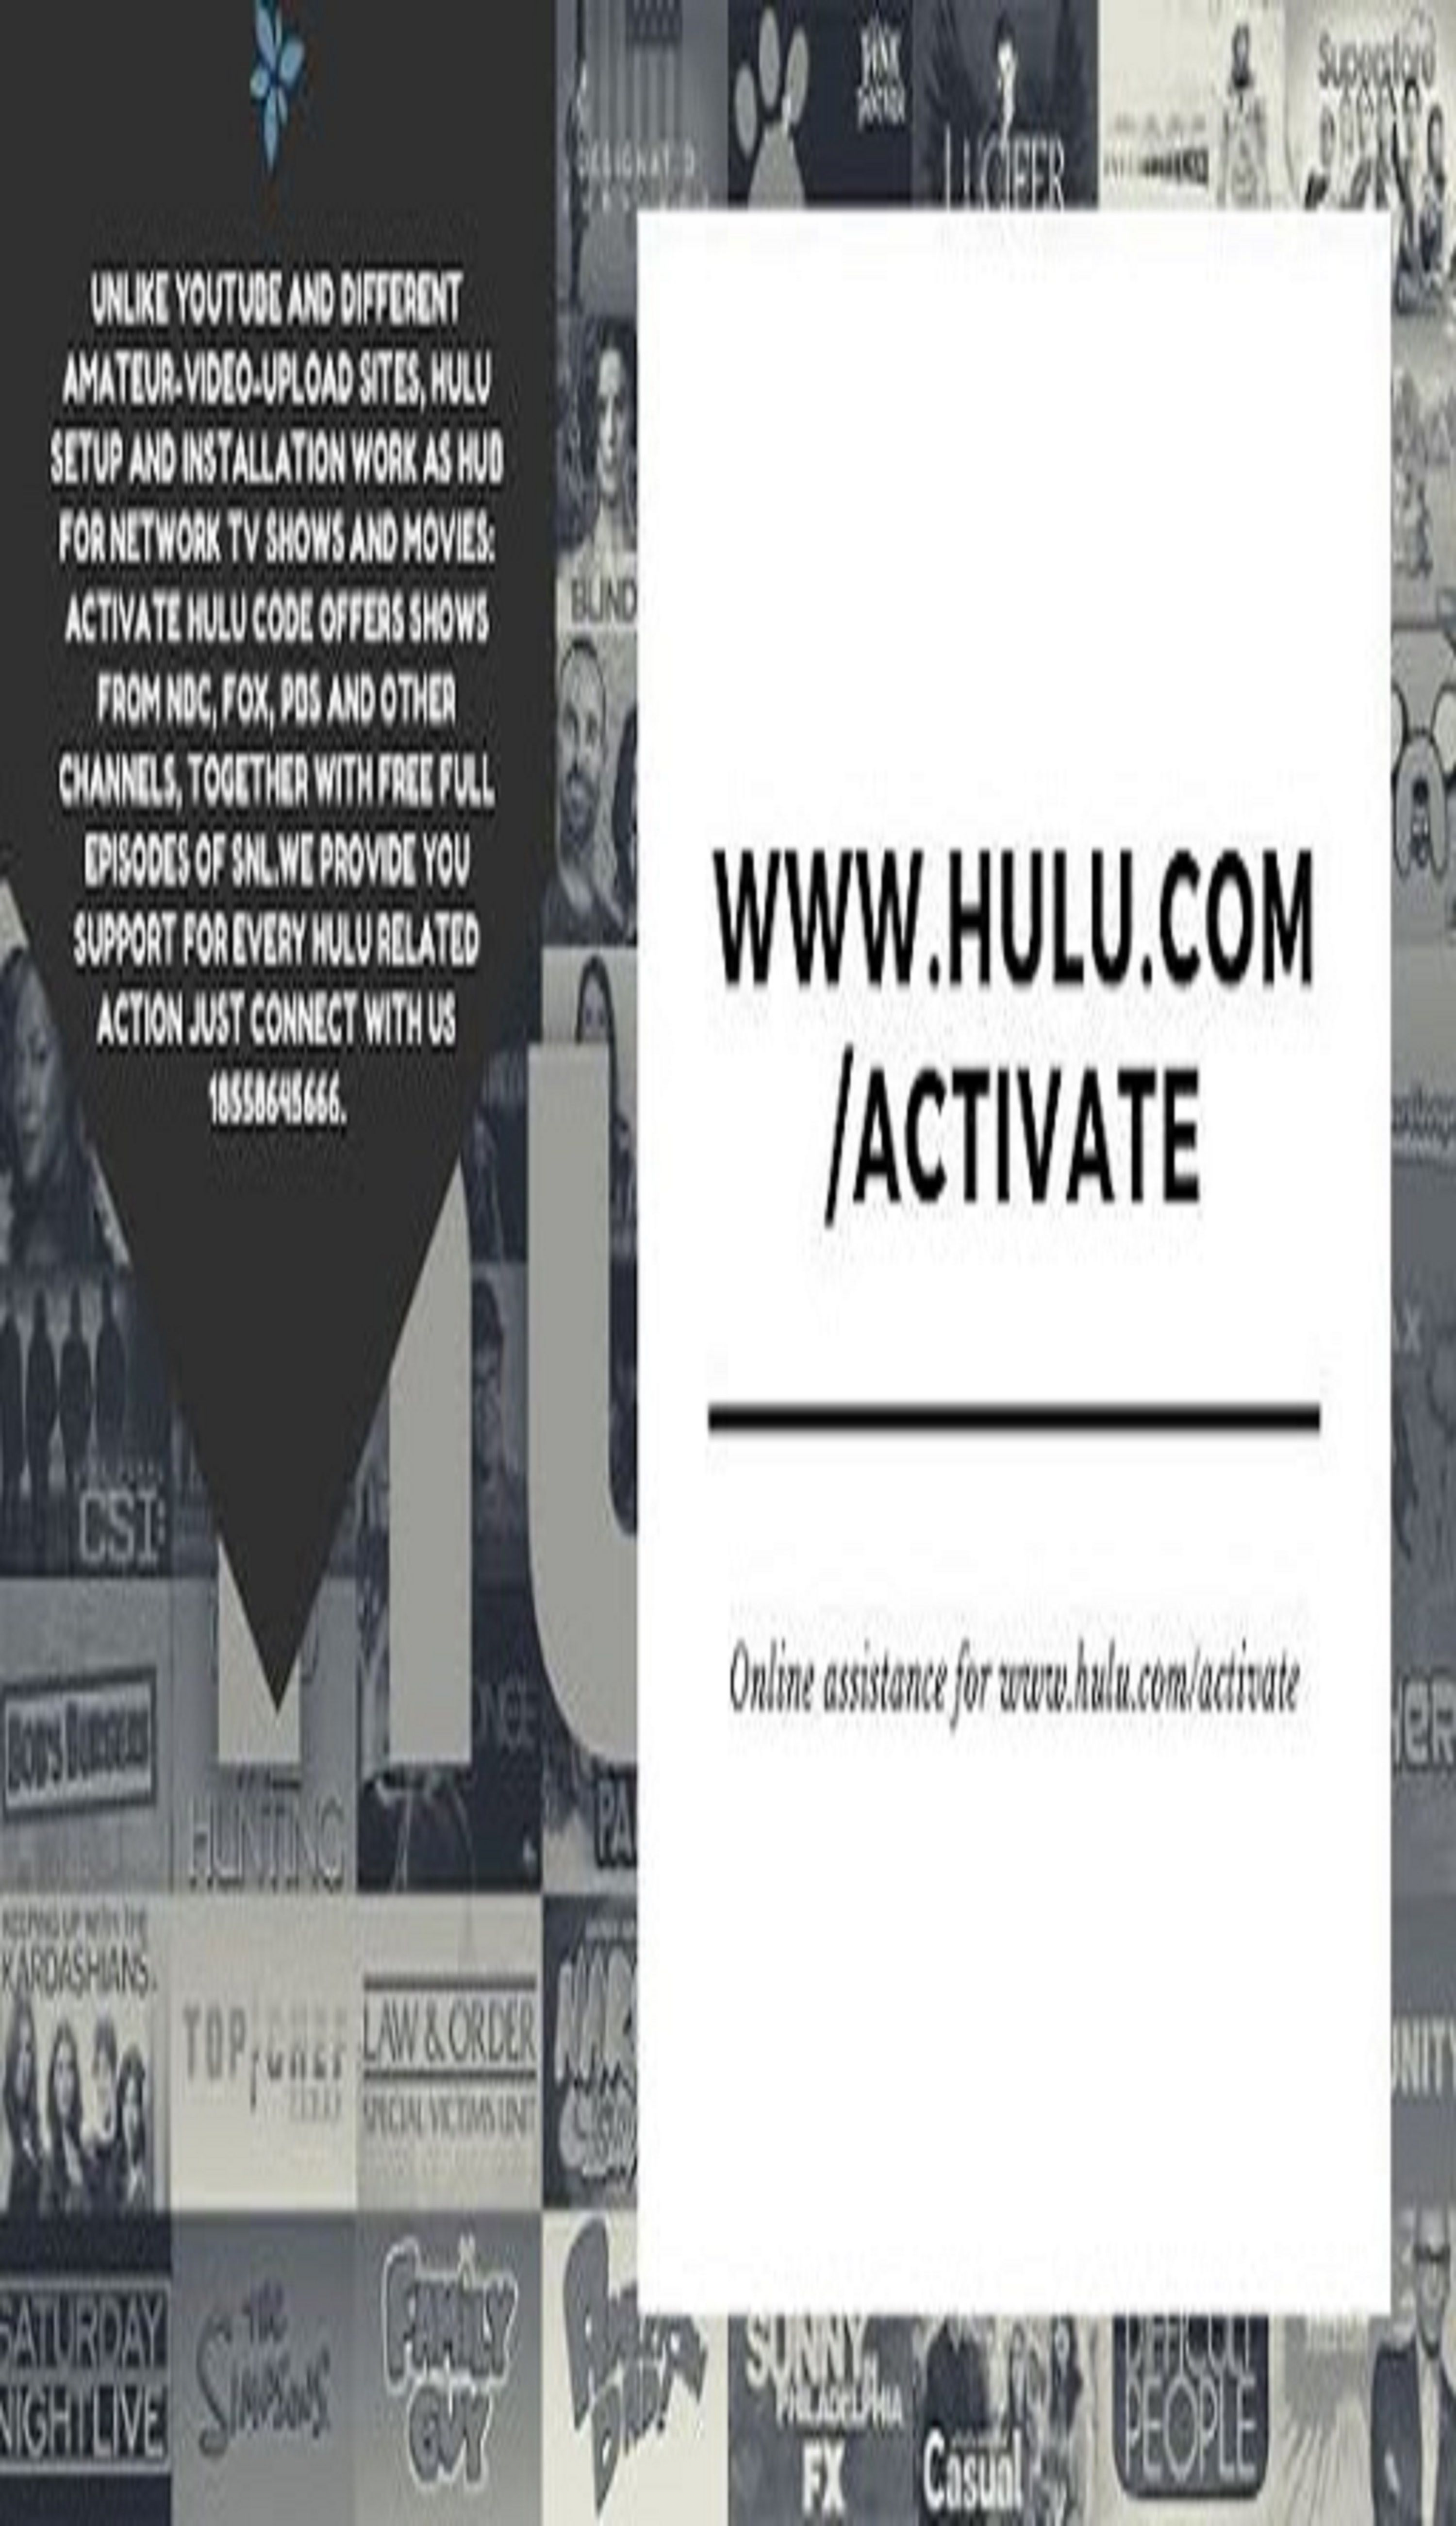 hulu com activate in 2020 Hulu, Activated, Coding